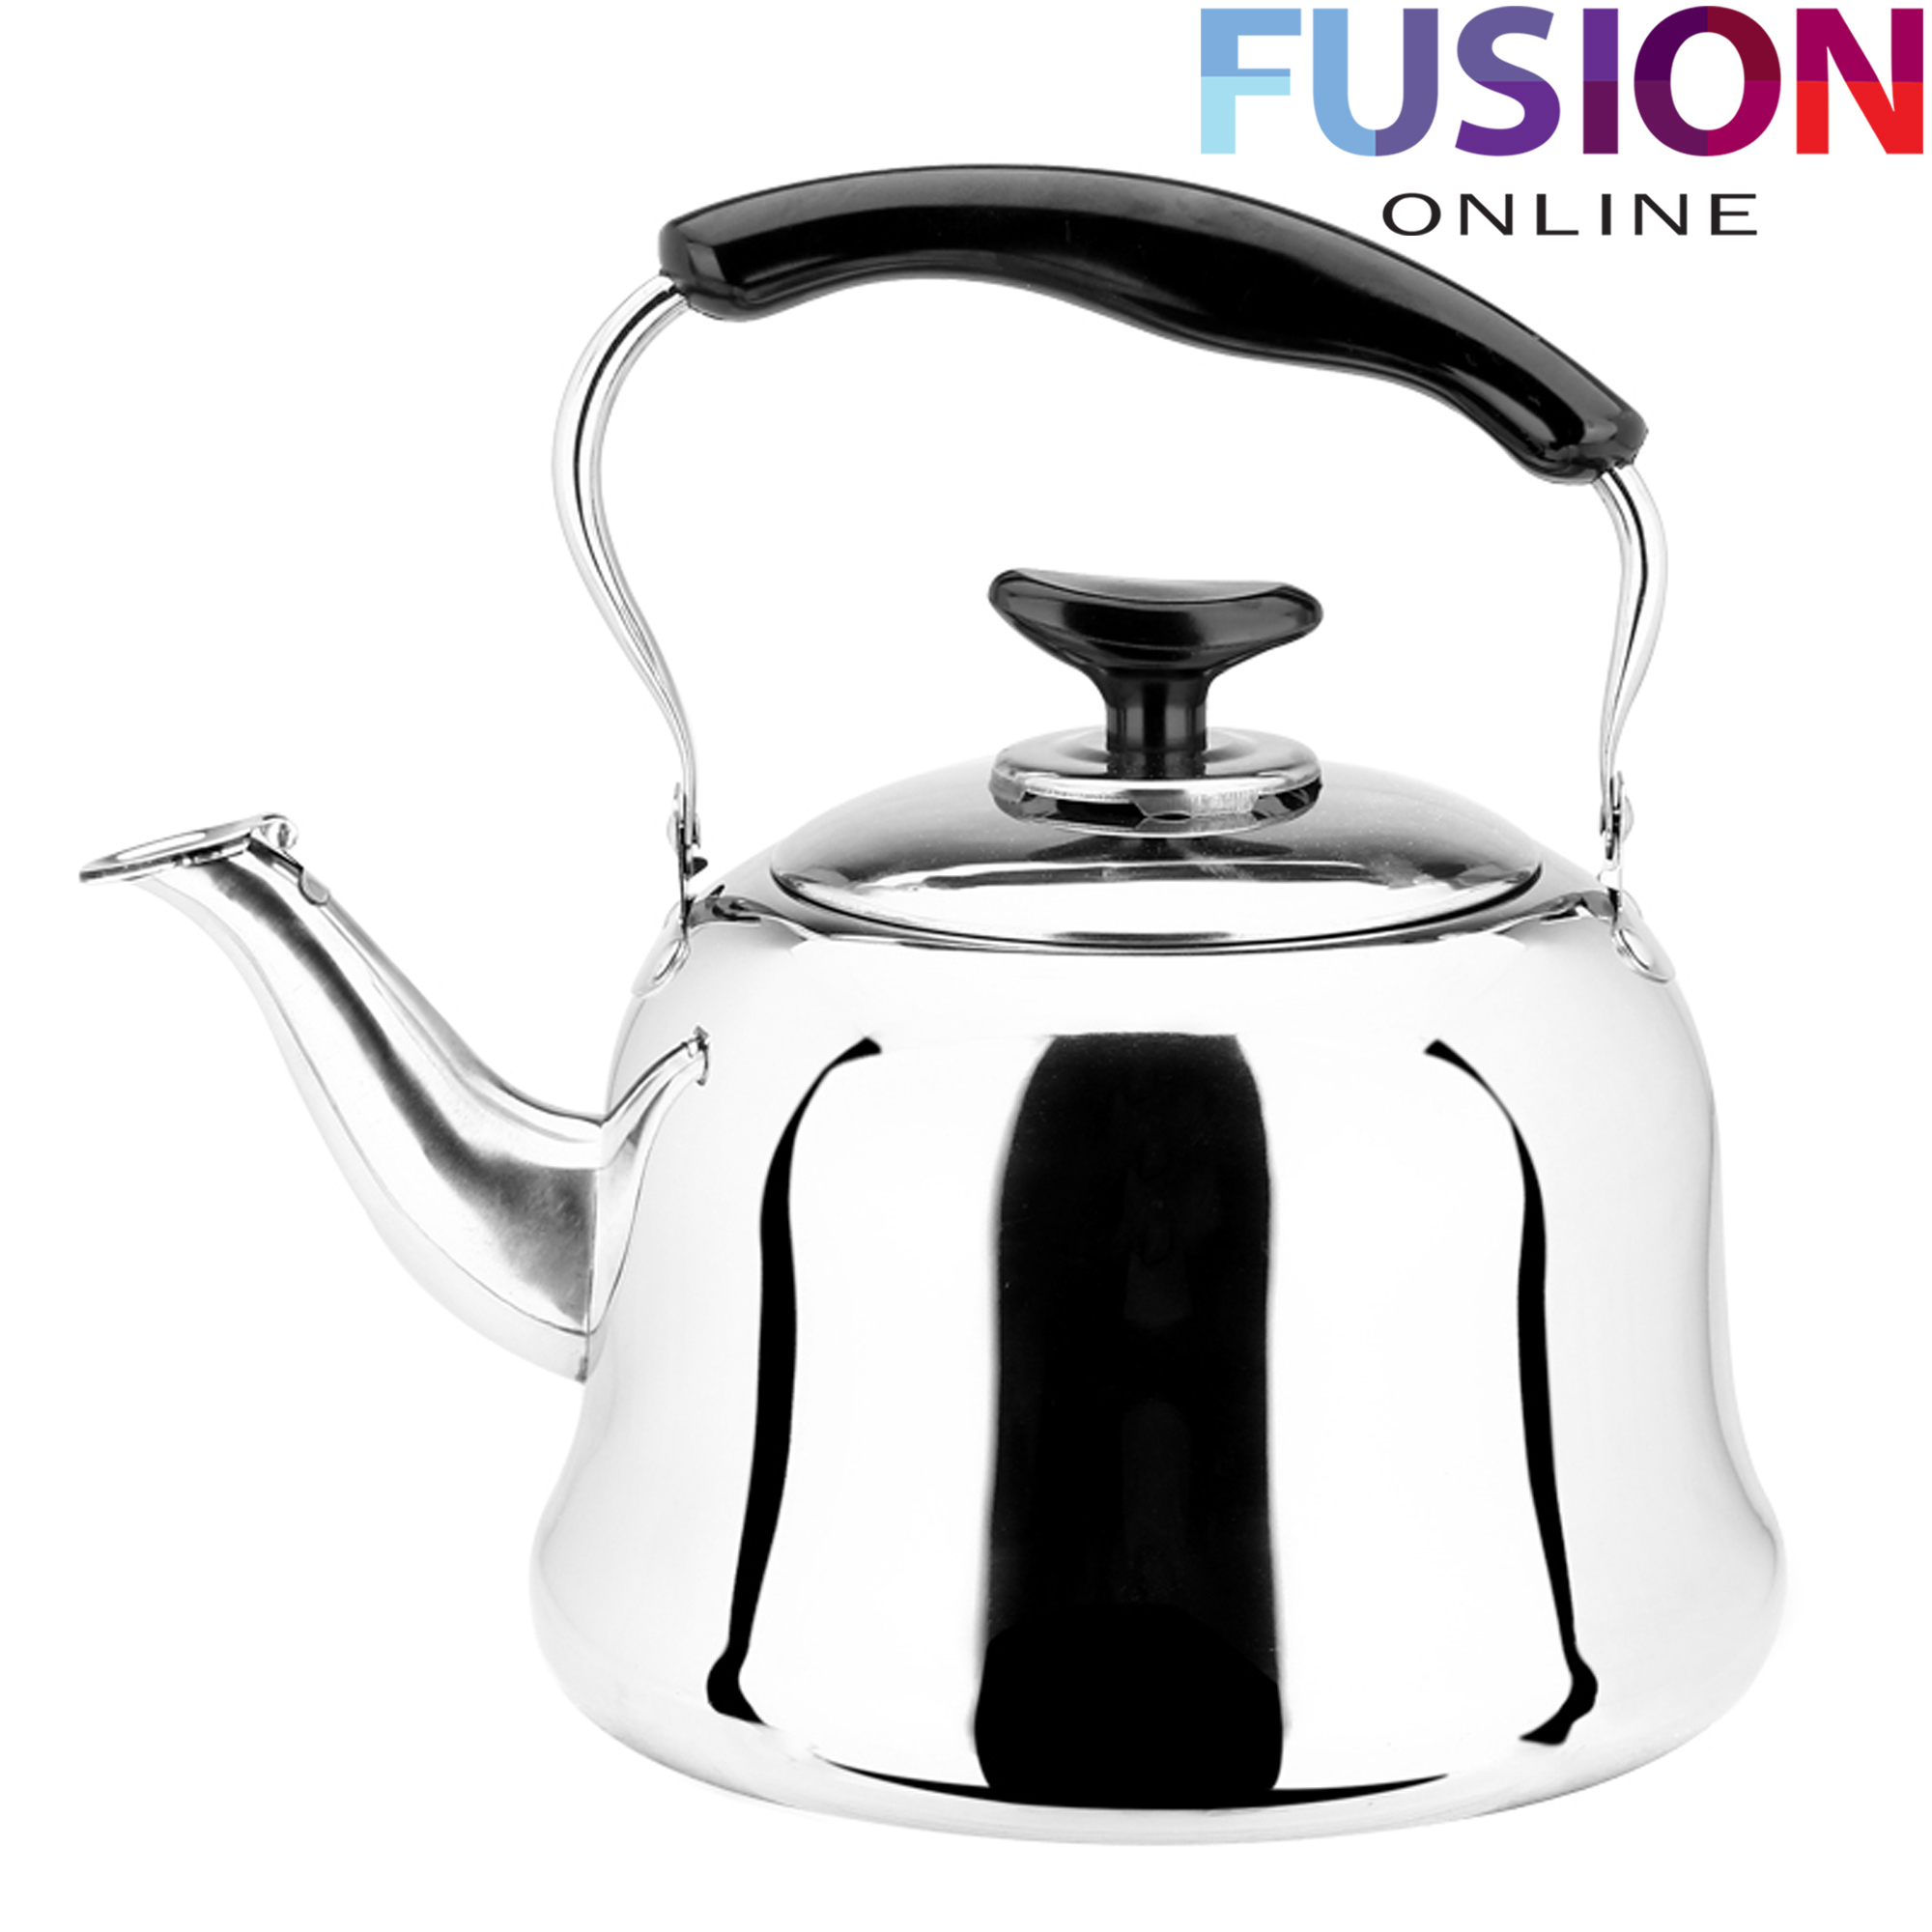 EVELYN LIVING 1 Litre Stainless Steel Traditional Kettle Electric Gas Hobs Stove Top Camping